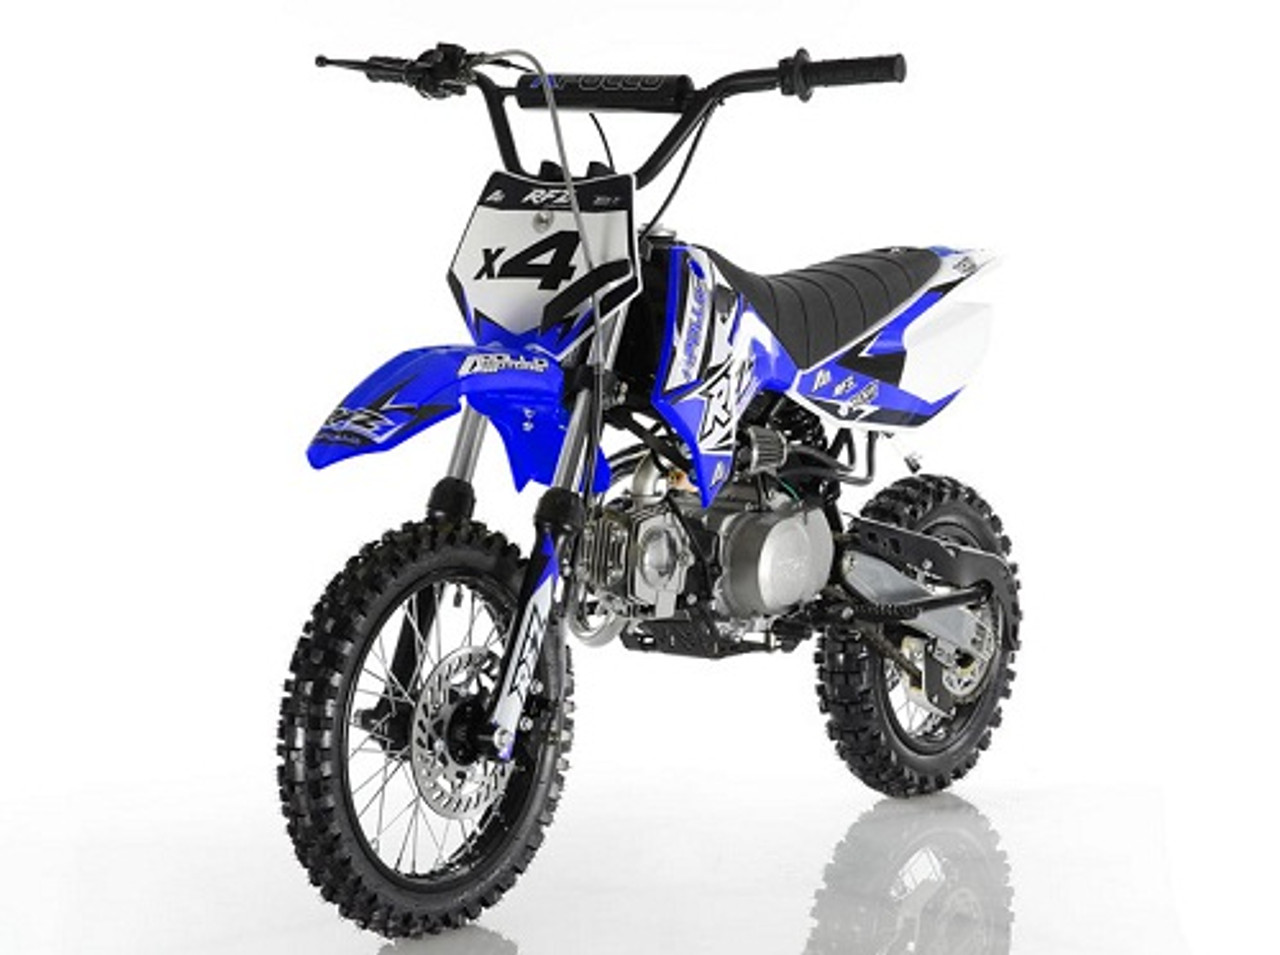 APOLLO DB-X4 RFZ 110cc RACING DIRT BIKE